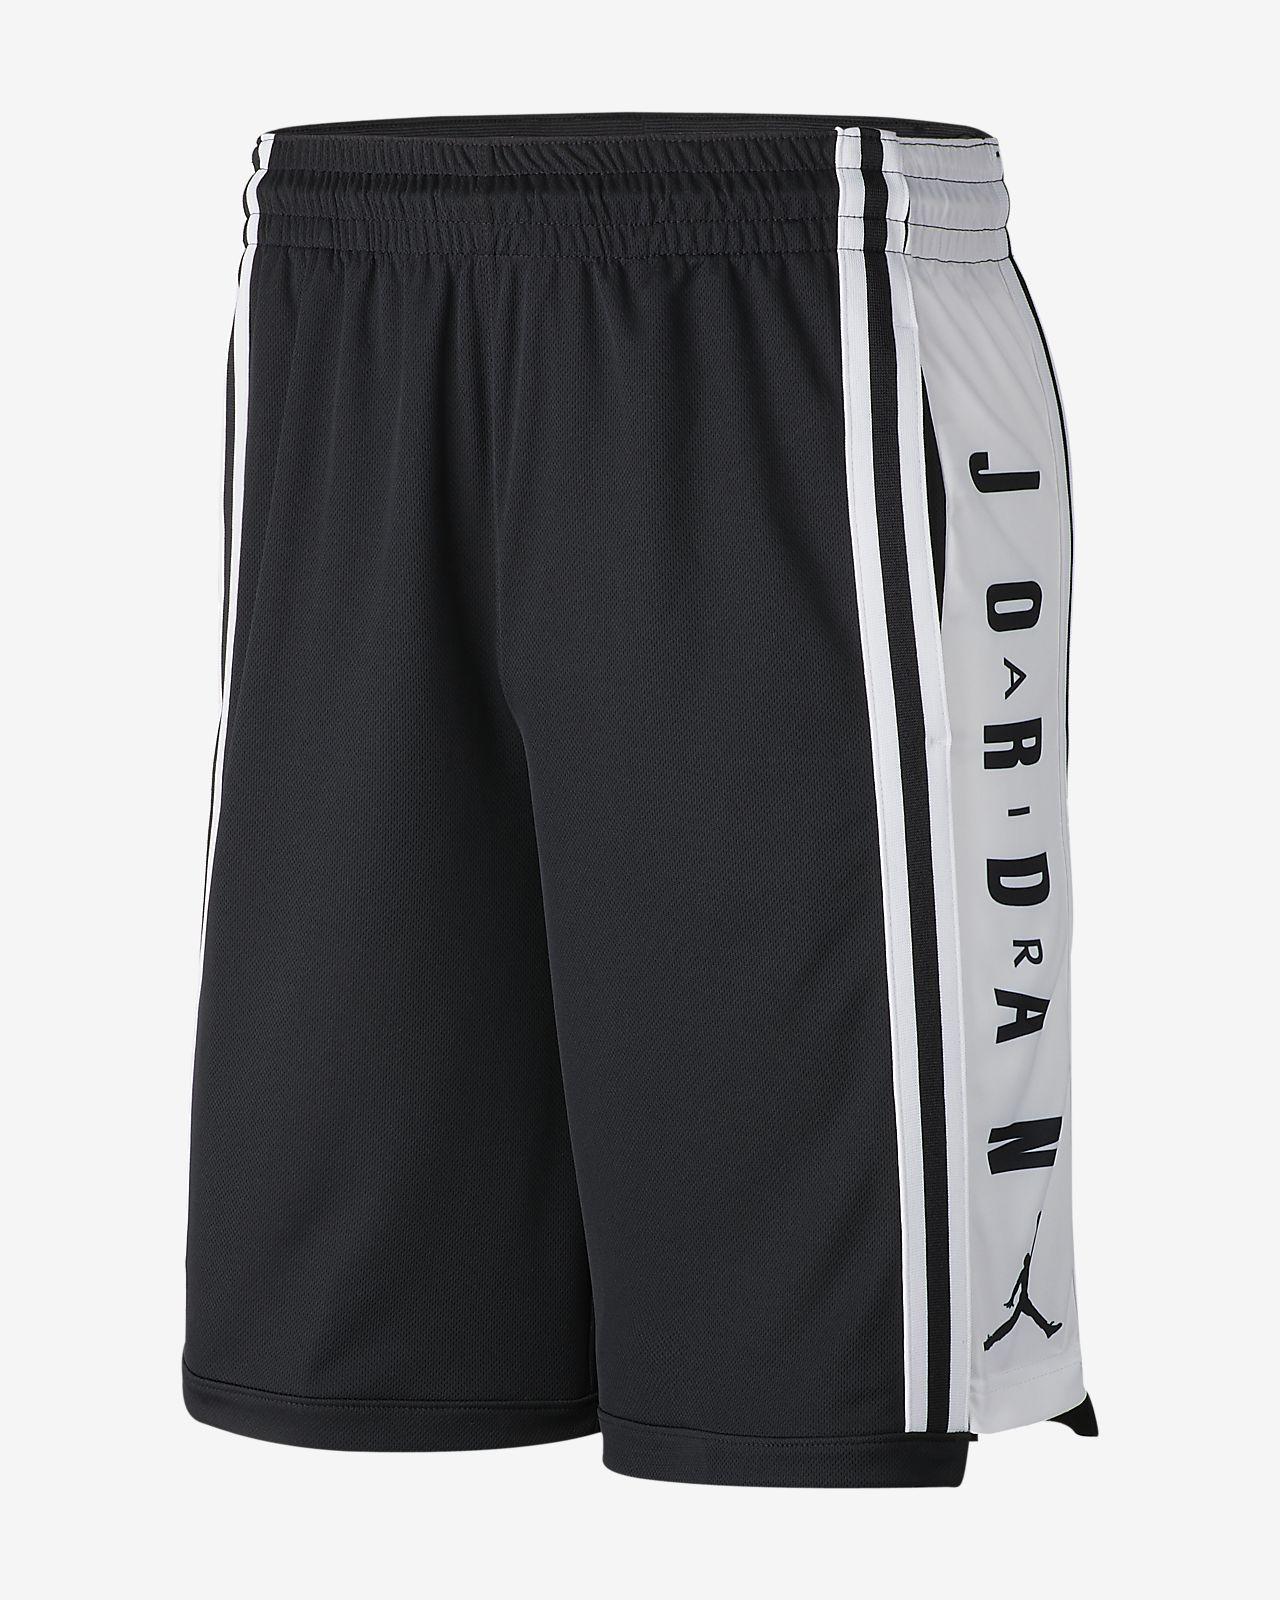 cbe6c49af65f Jordan Men s Basketball Shorts. Nike.com